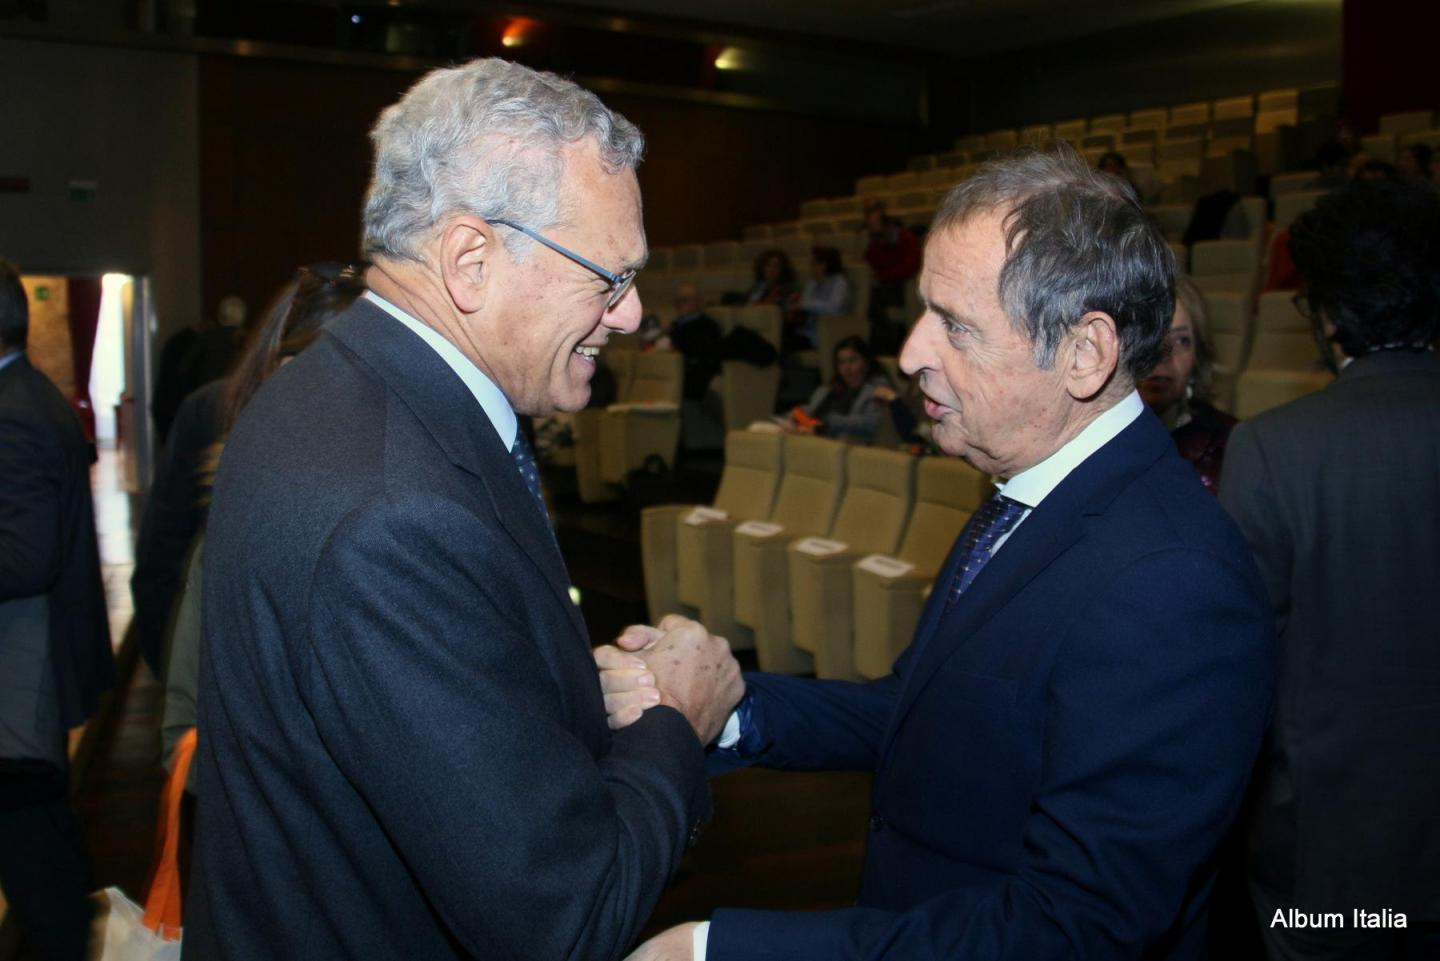 Roberto Jarach, vicepresident of the Shoah Memorial Foundation with Gustavo Adolfo Cioppa